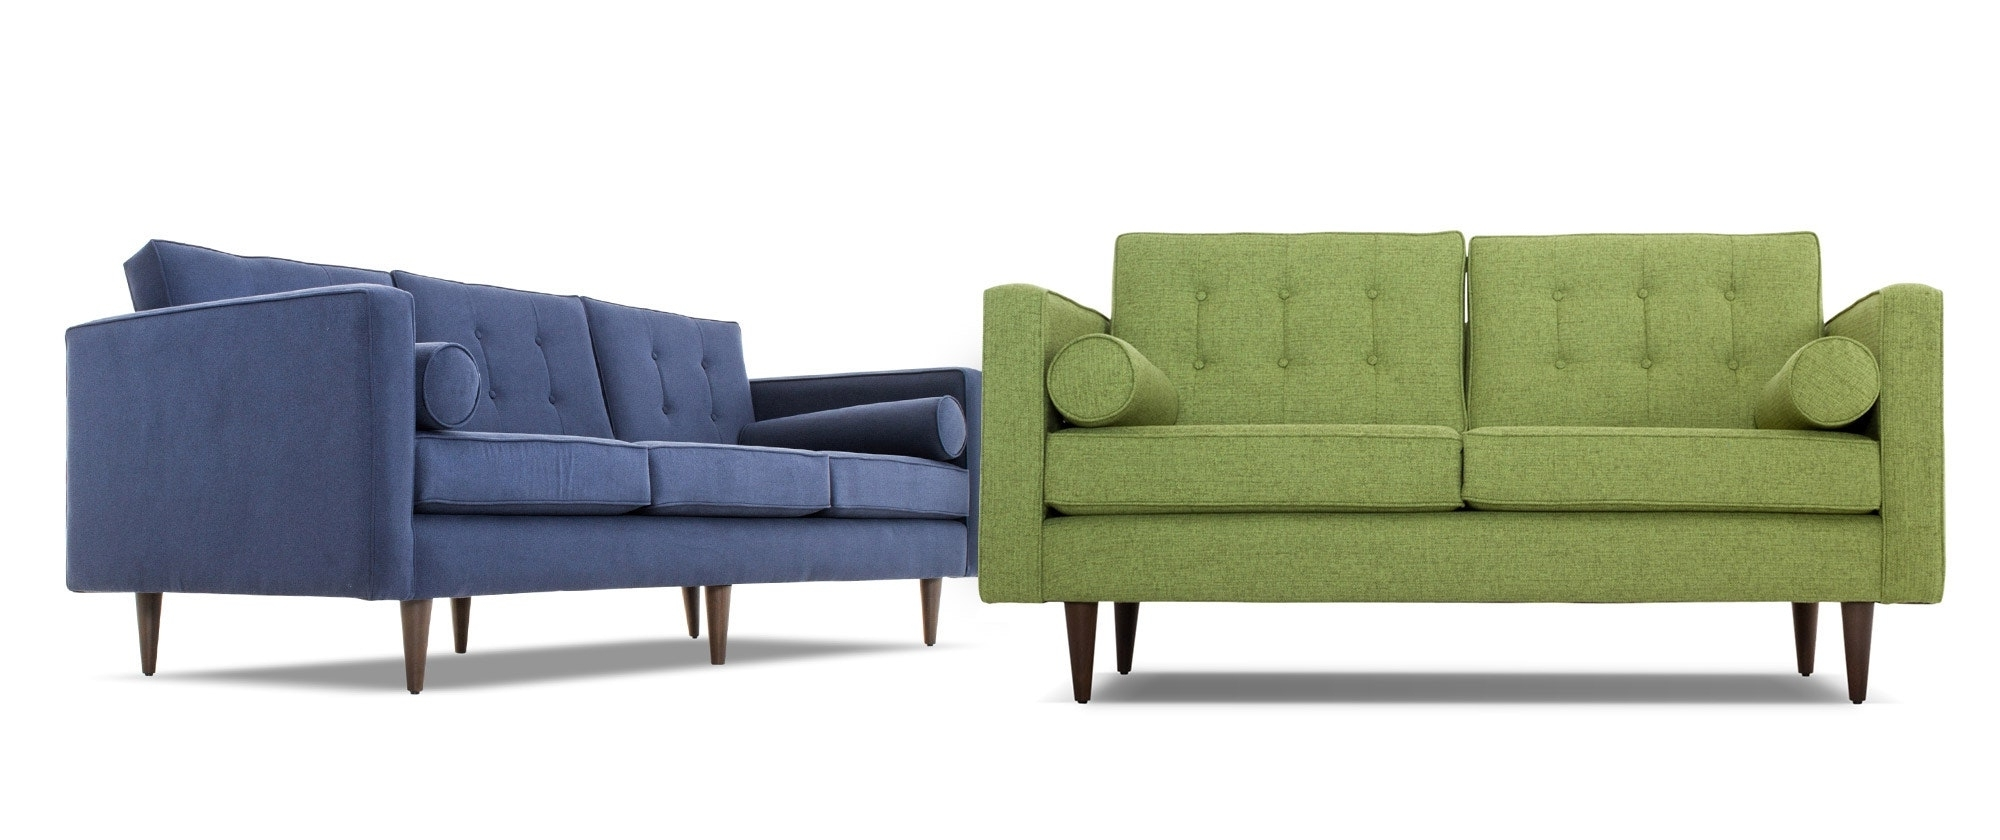 Joybird In Most Up To Date Braxton Sofas (Gallery 11 of 15)